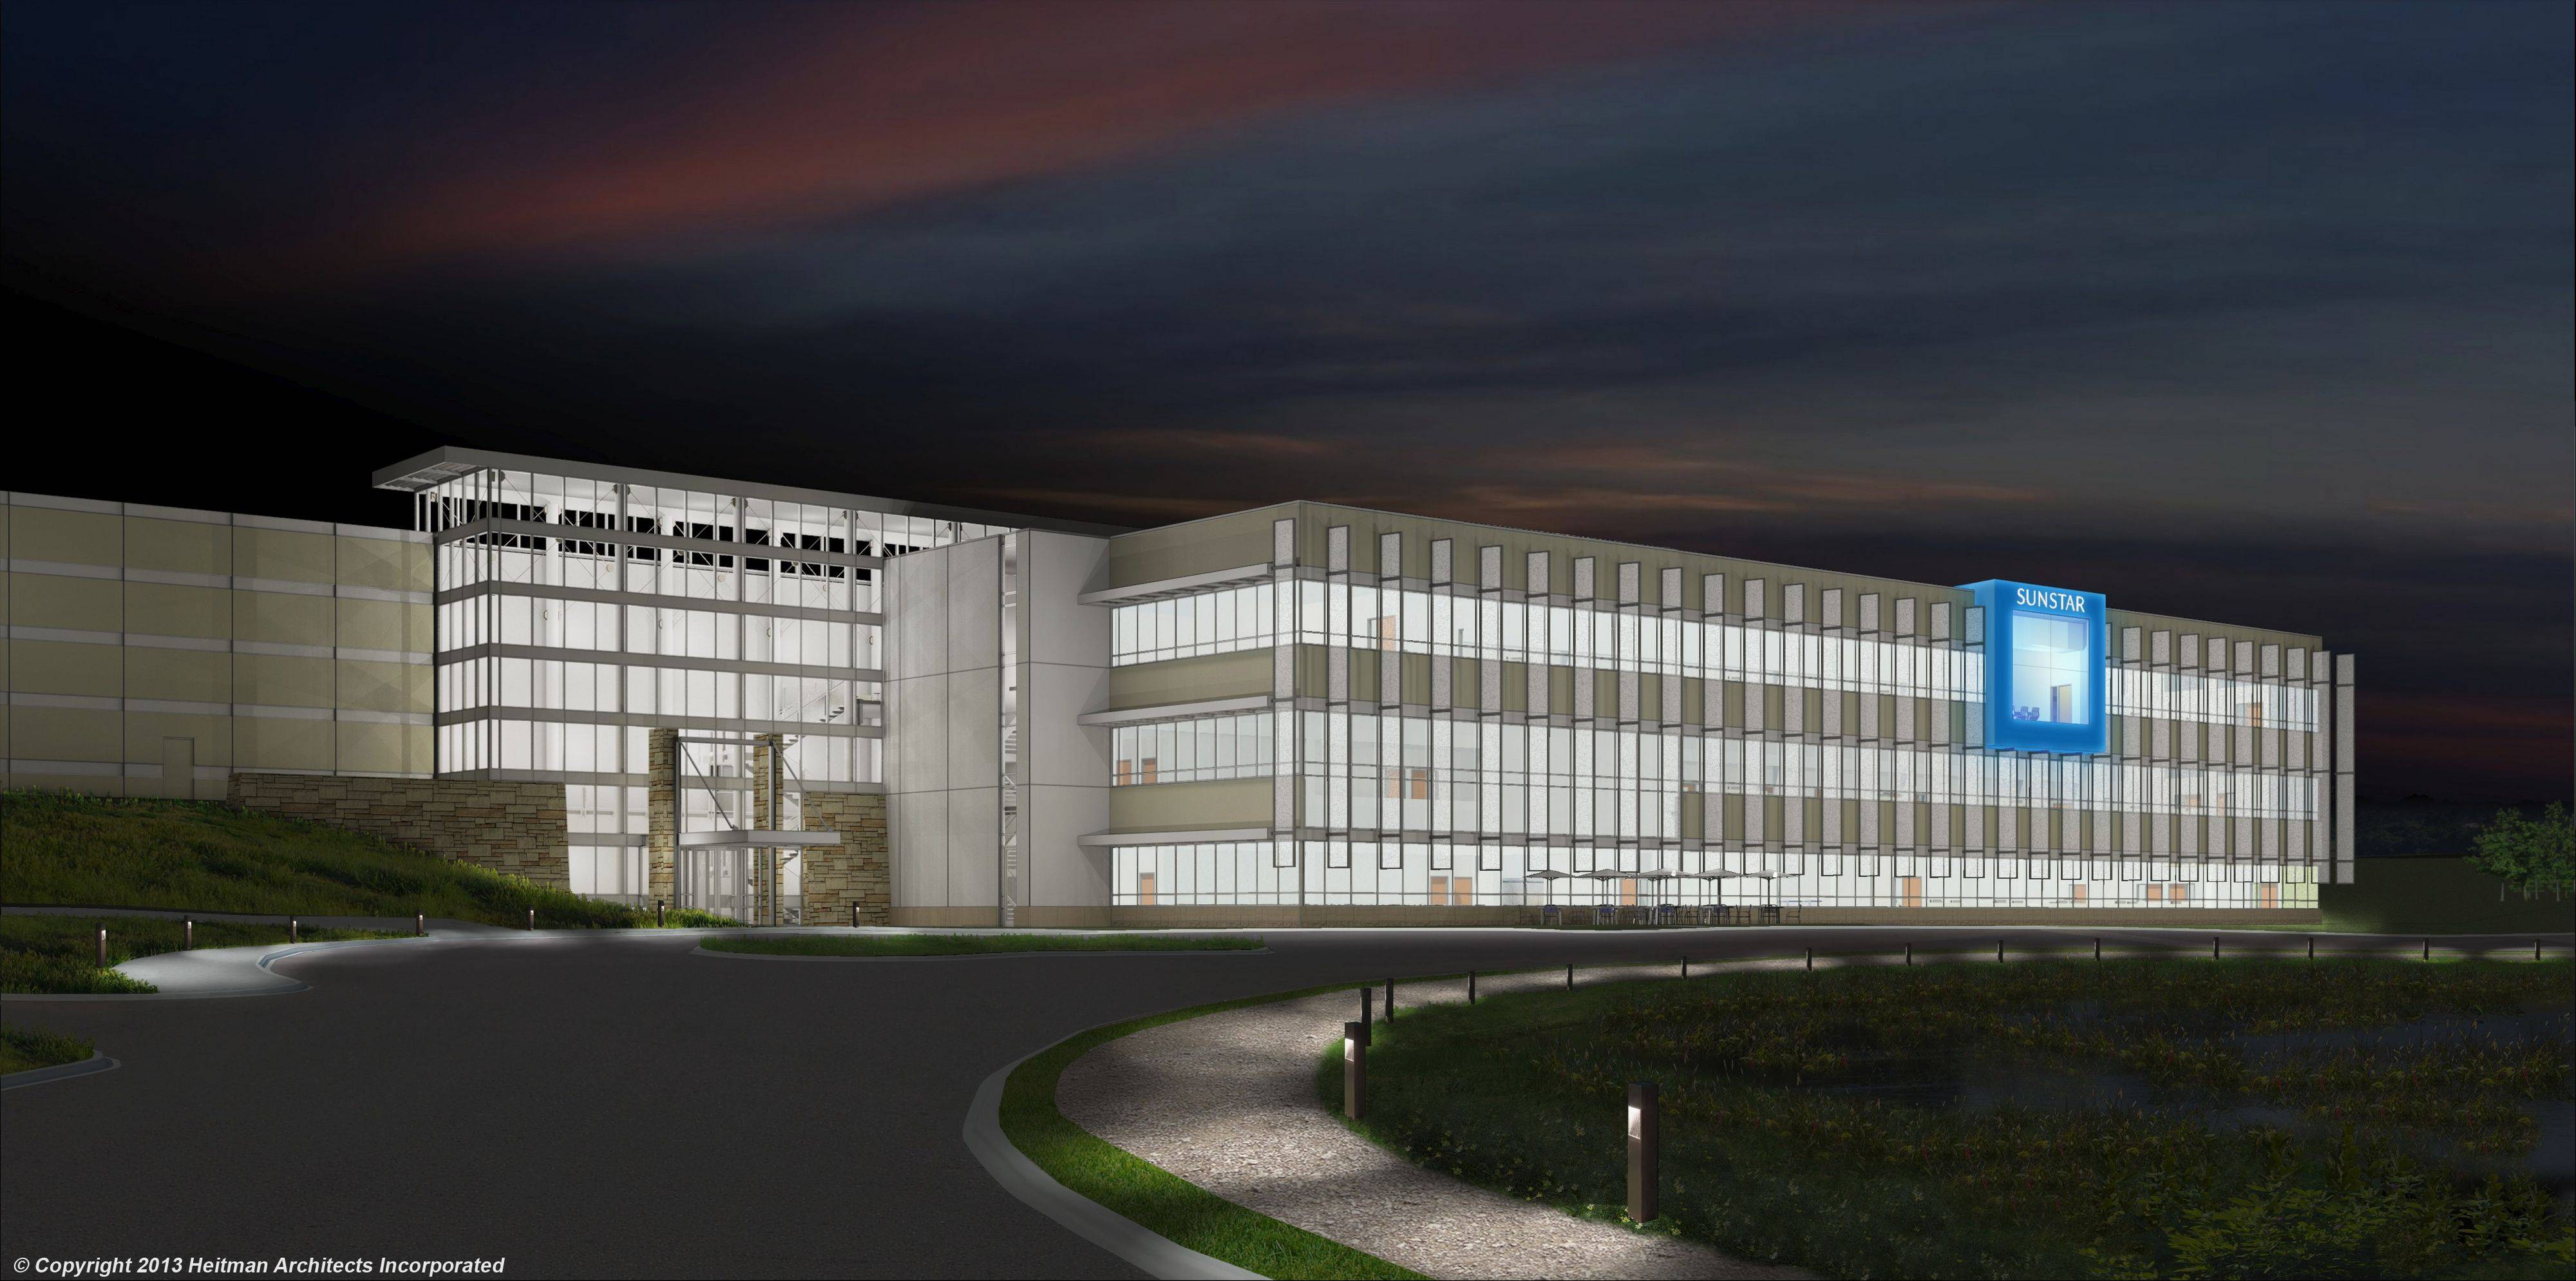 Sunstar Americas Inc.'s new 302,000-square-foot facility in Schaumburg is expected to bring 400 jobs to the village. The site sits north of the Jane Addams Tollway and east of Roselle Road.